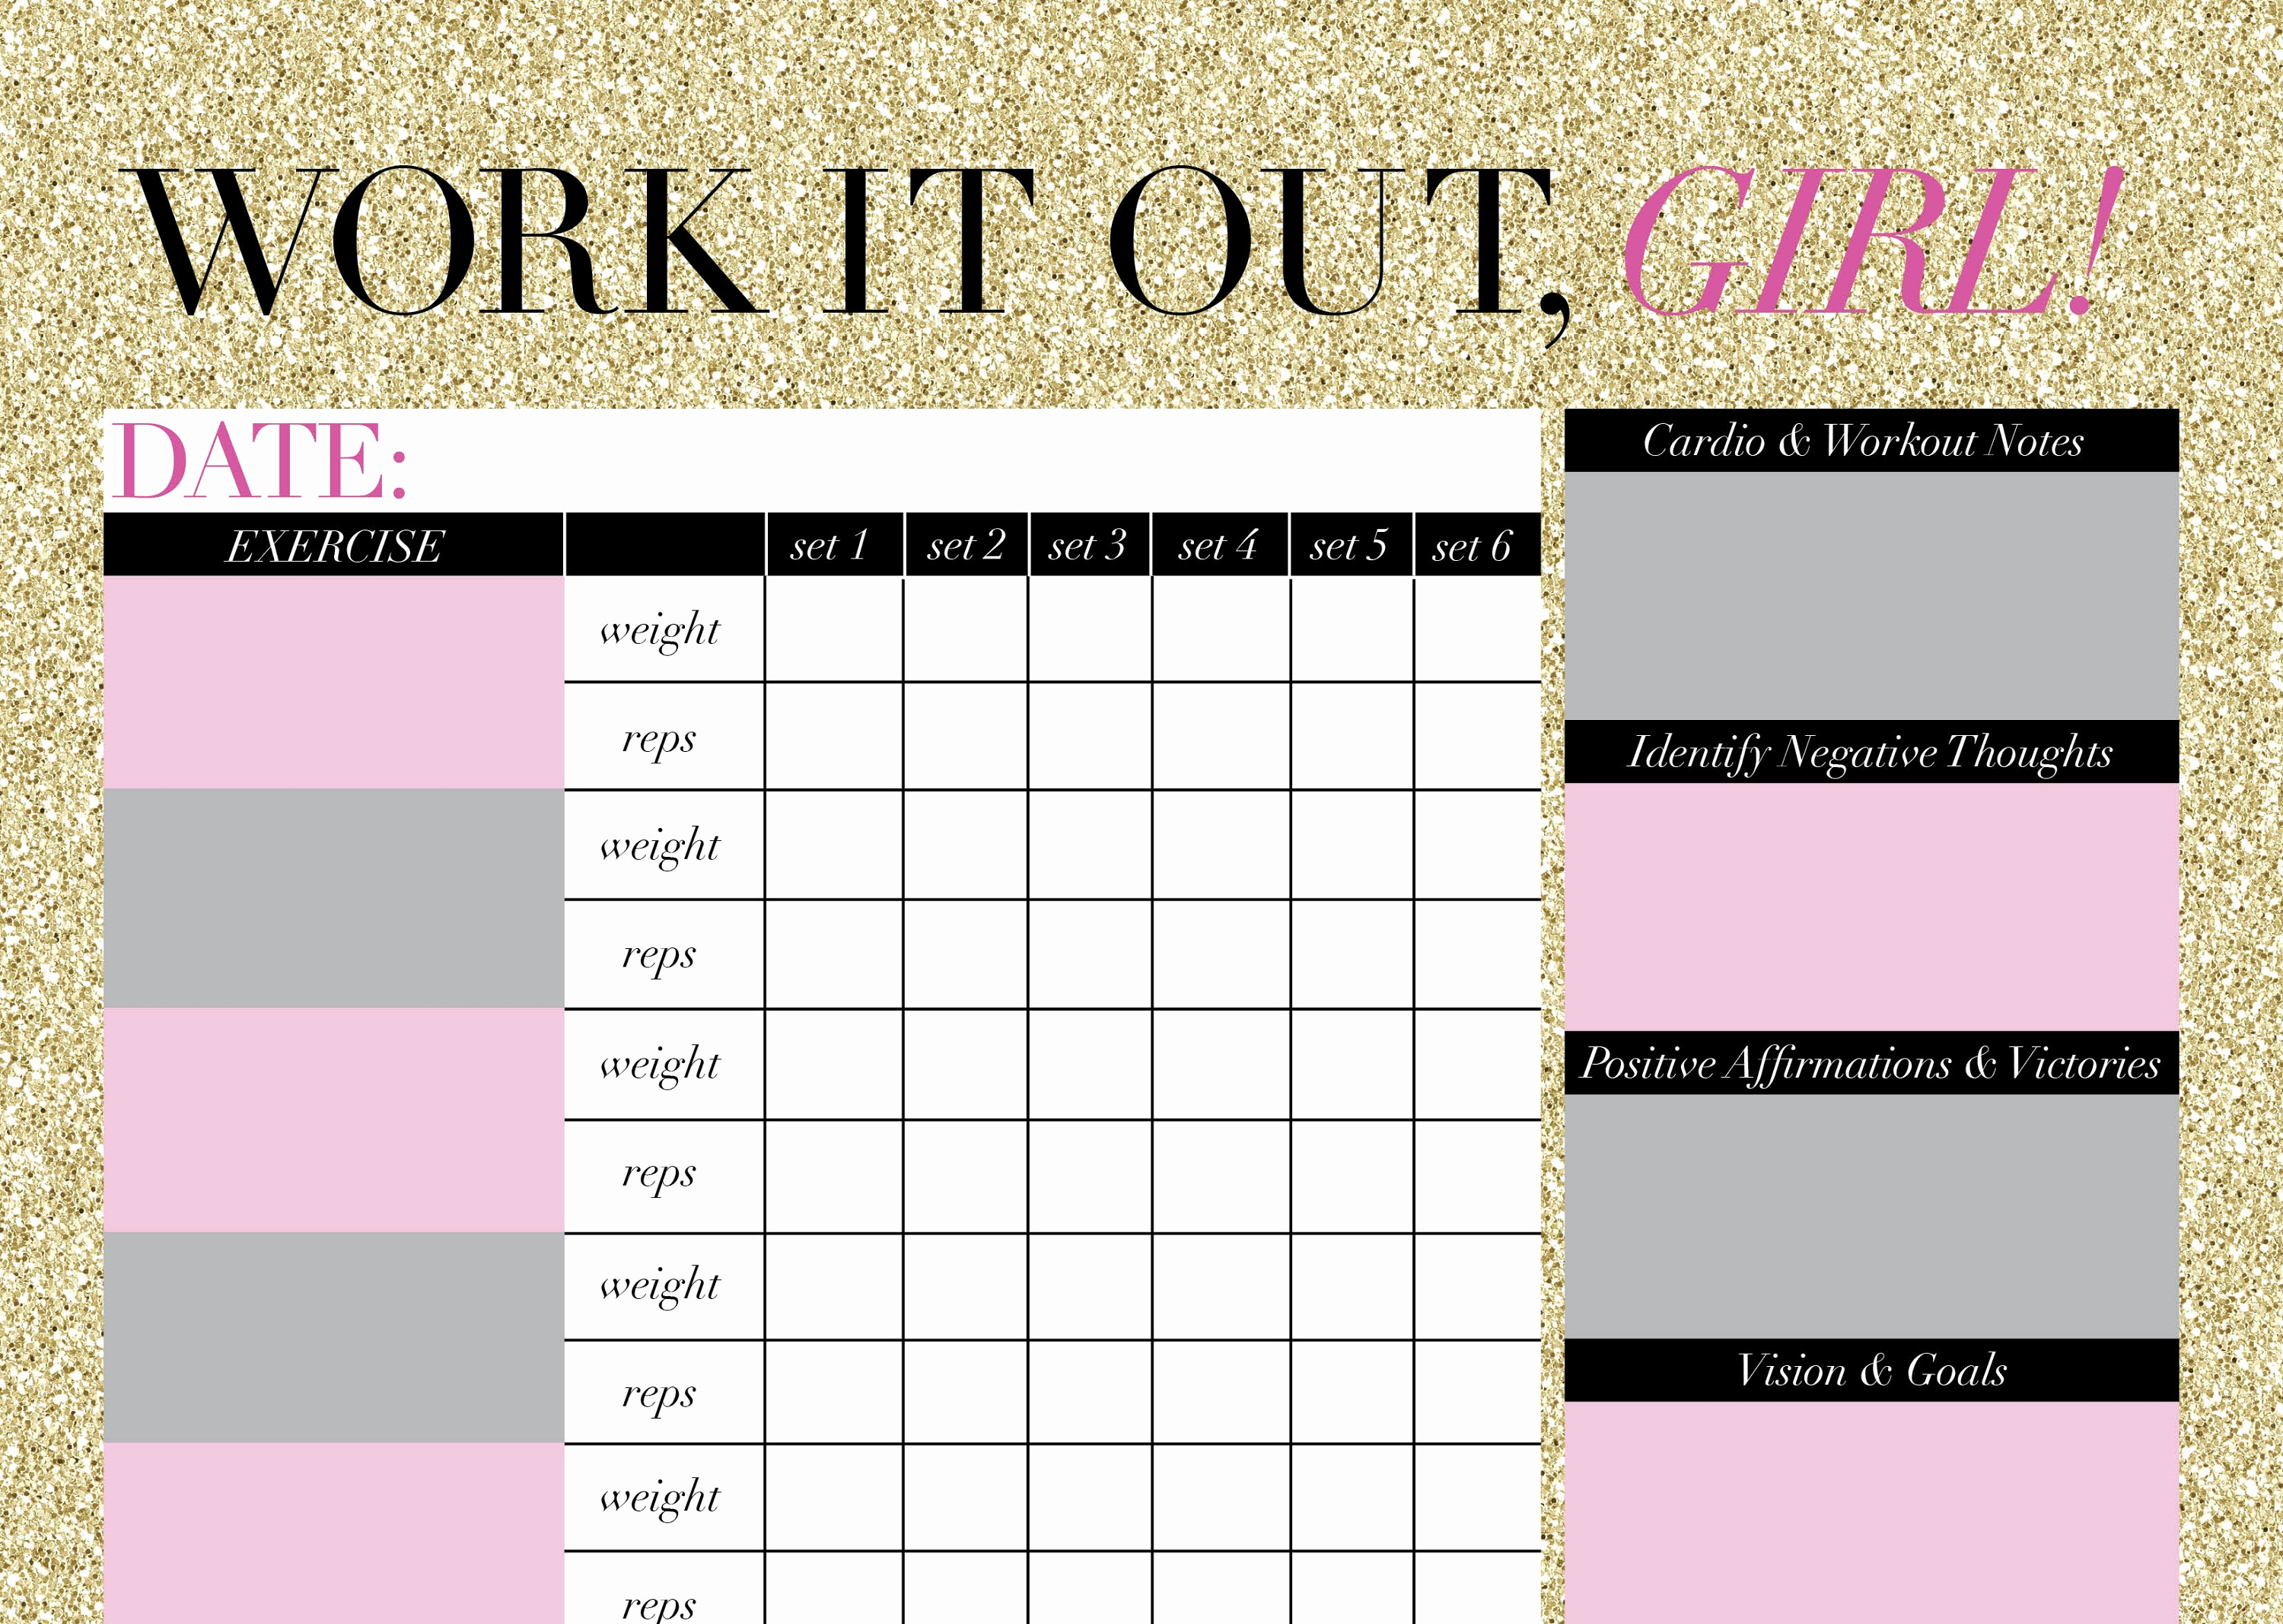 Work Out Schedule Templates Unique Index Of Wp Content 2016 04